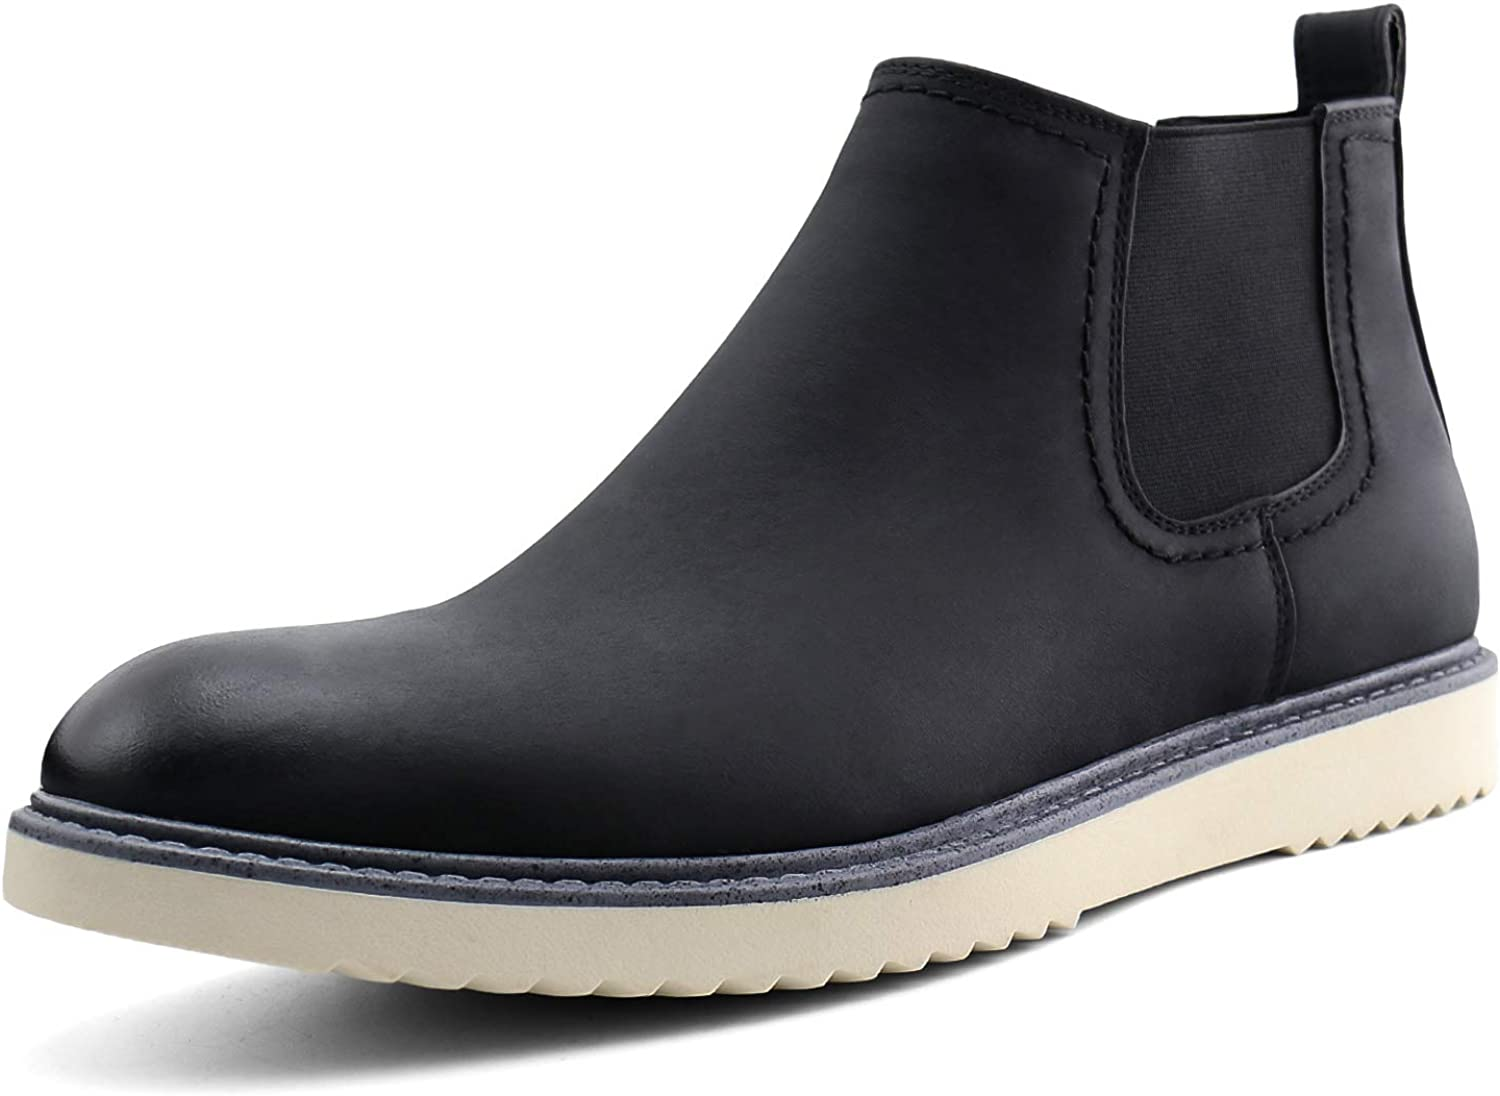 JABASIC Mens Chelsea Boots Slip Casual On Chukka Choice Ankle Fort Worth Mall Dre